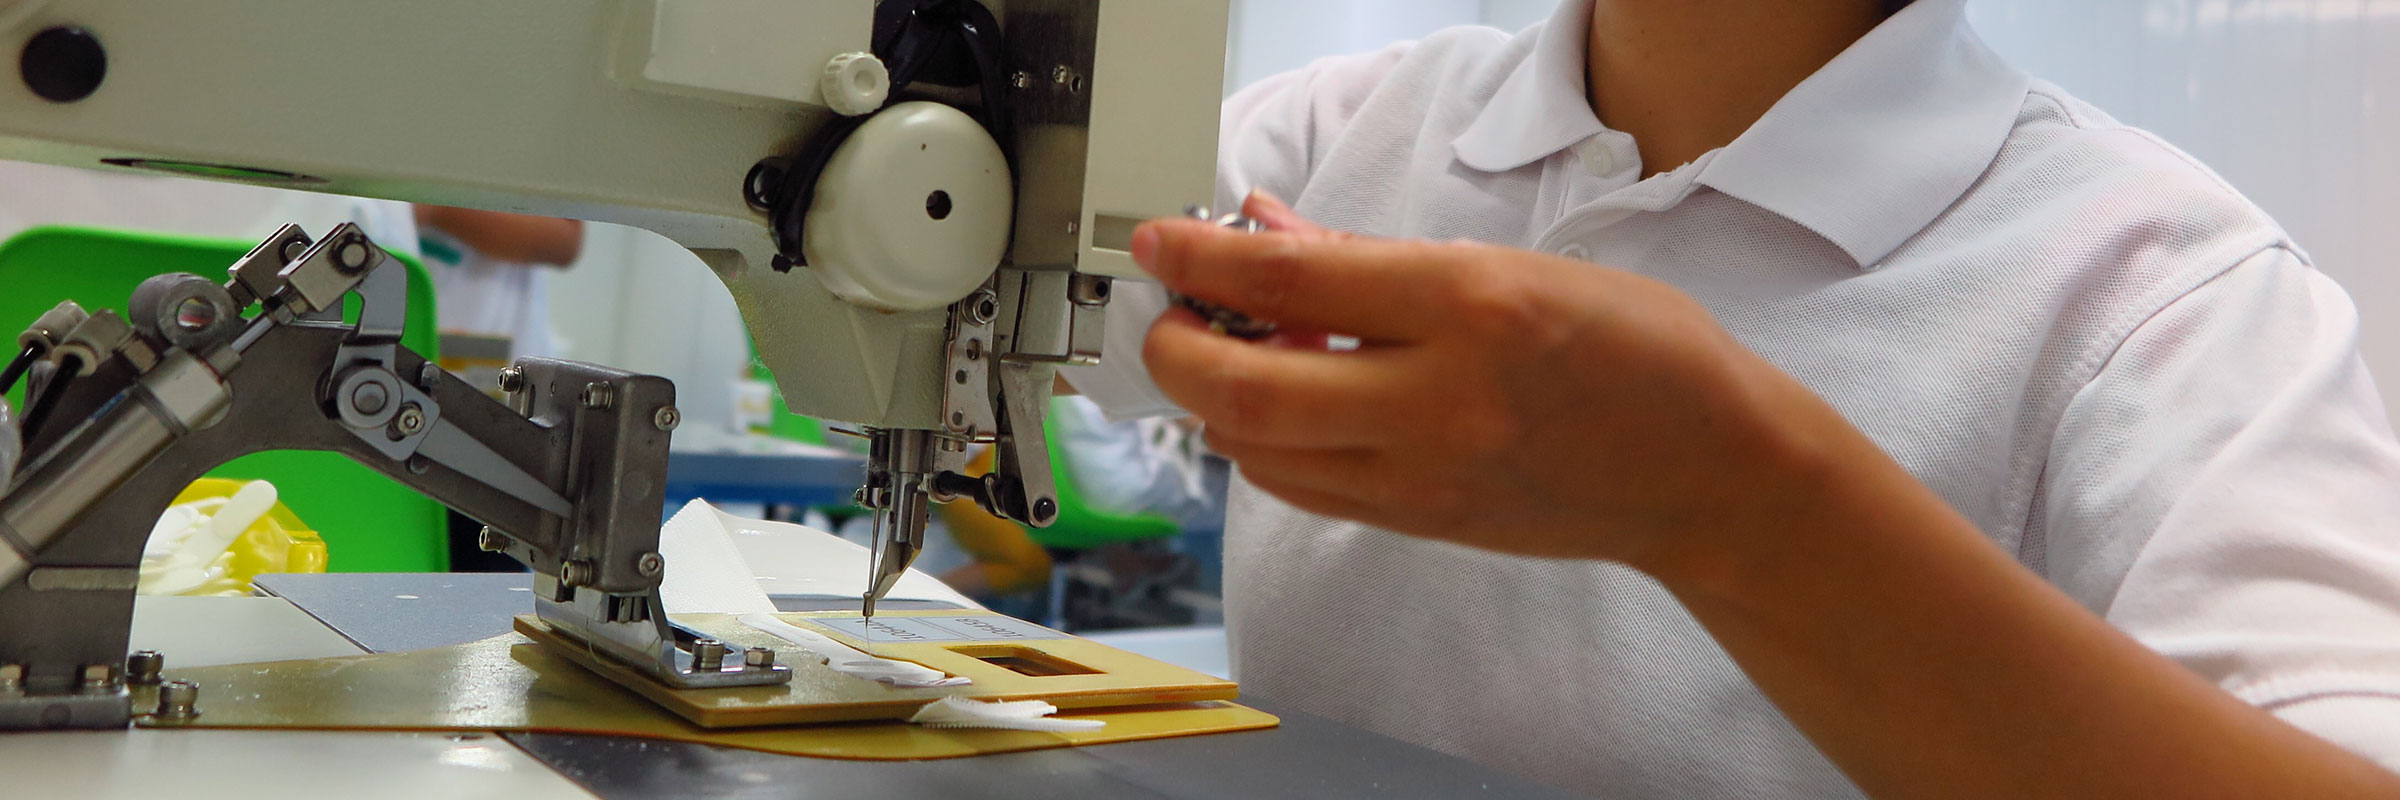 VitalCare | Urology Products - Cut-Sew-Assembly-Converting